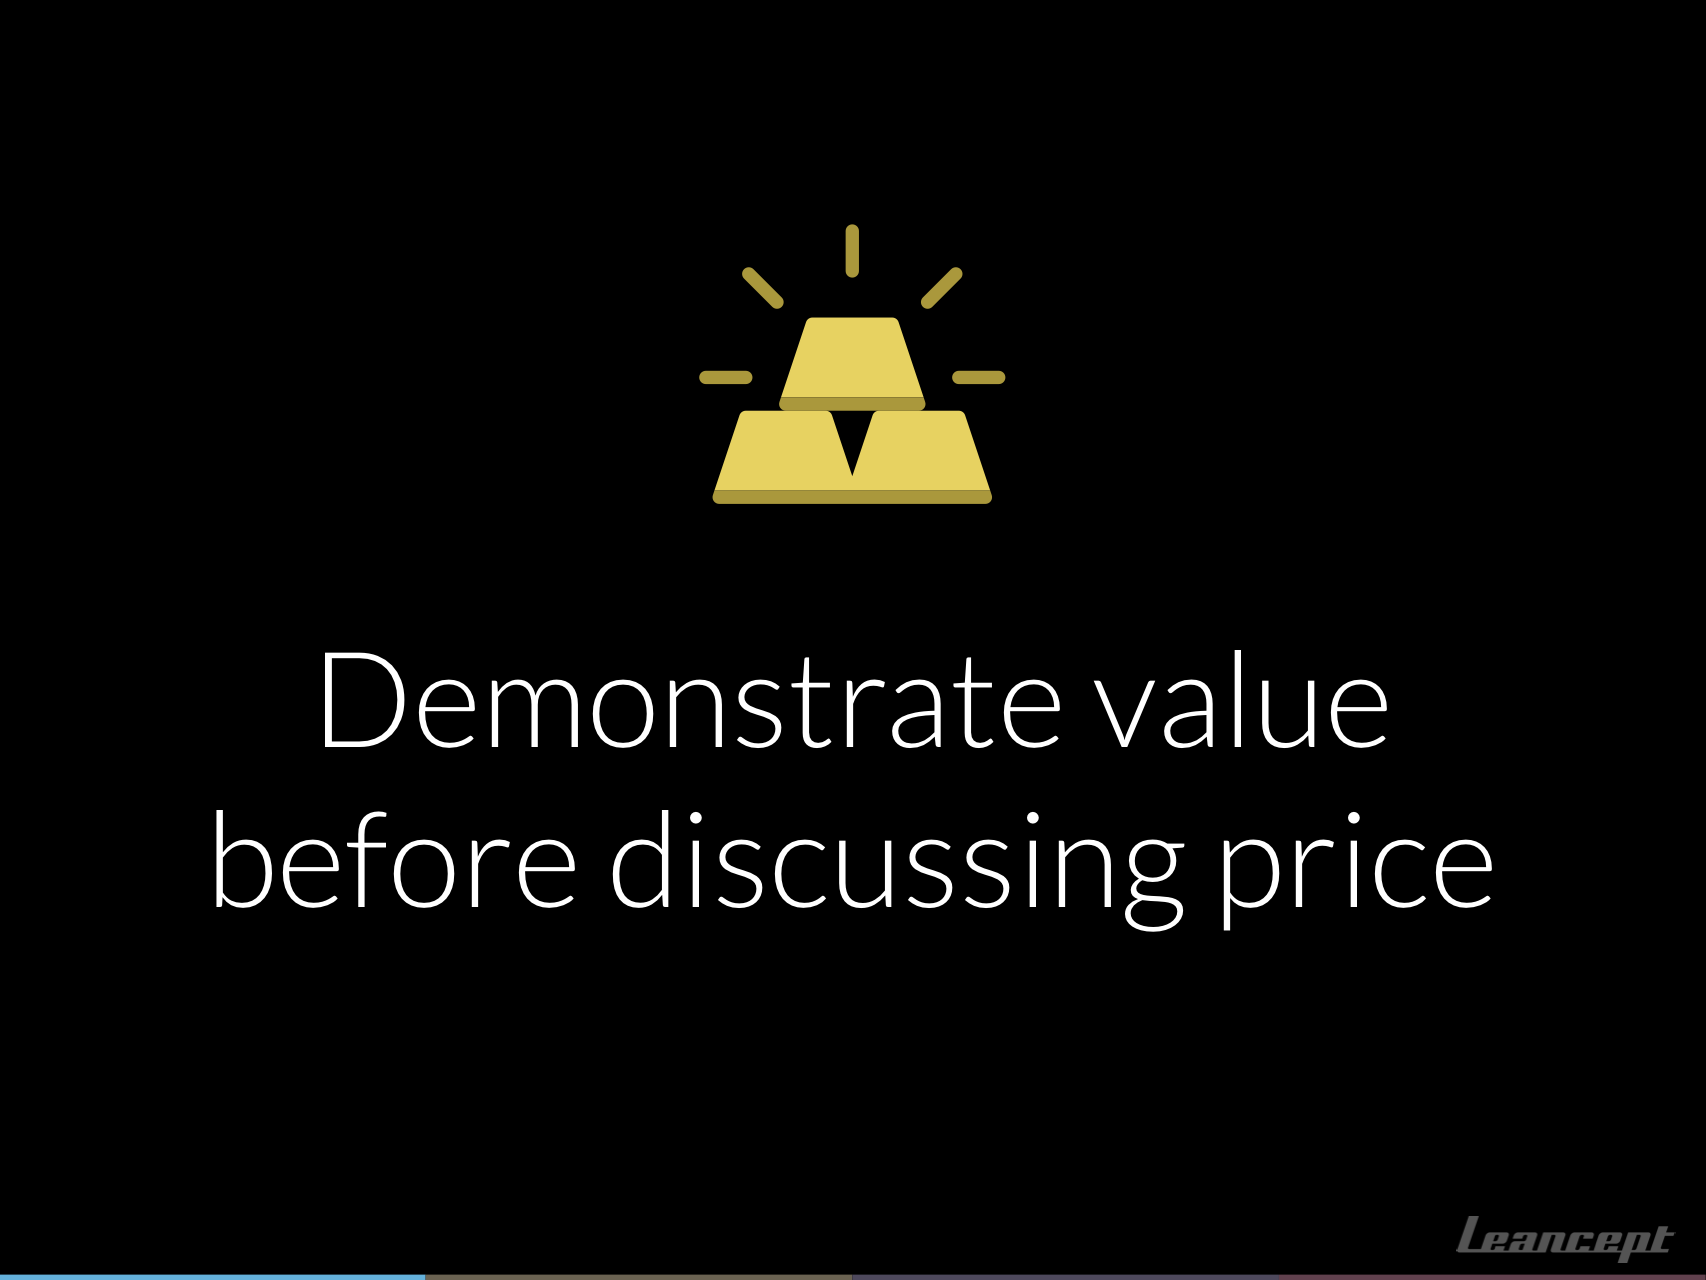 Demonstrate value before discussing price.